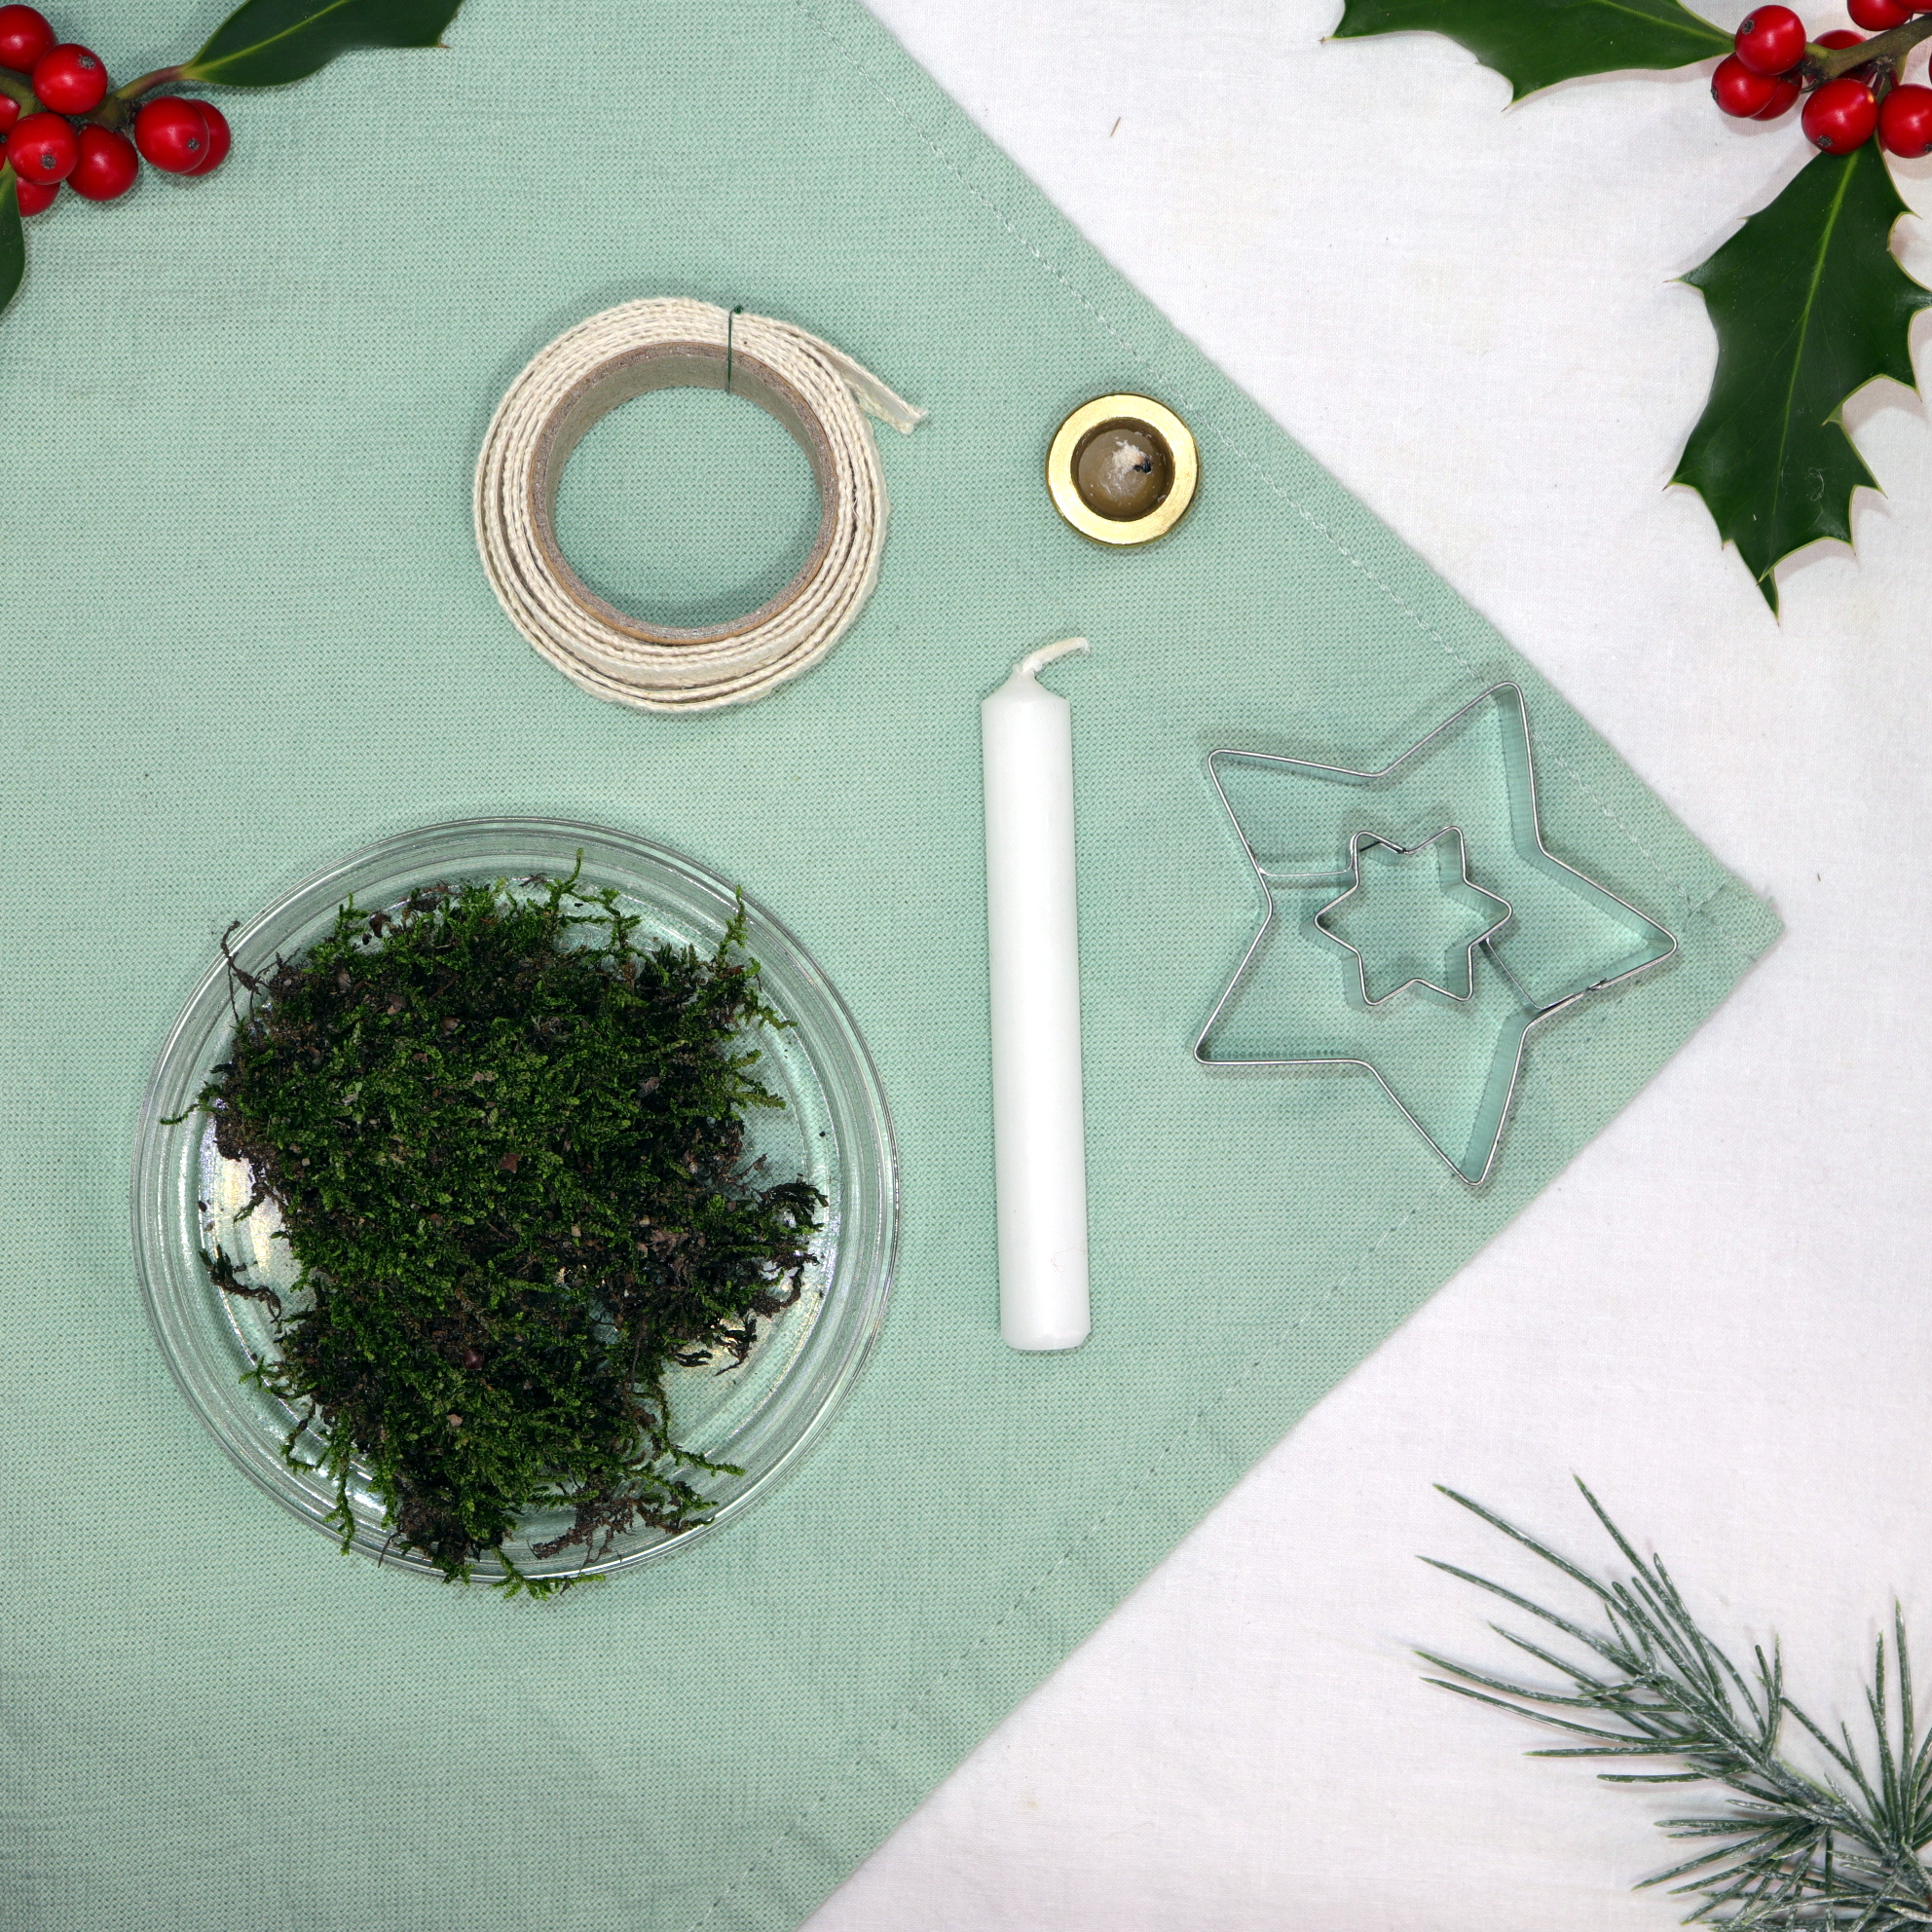 Diy Candle Holder Made Out Of Cookie Cutter Moss And Crochet Ribbon